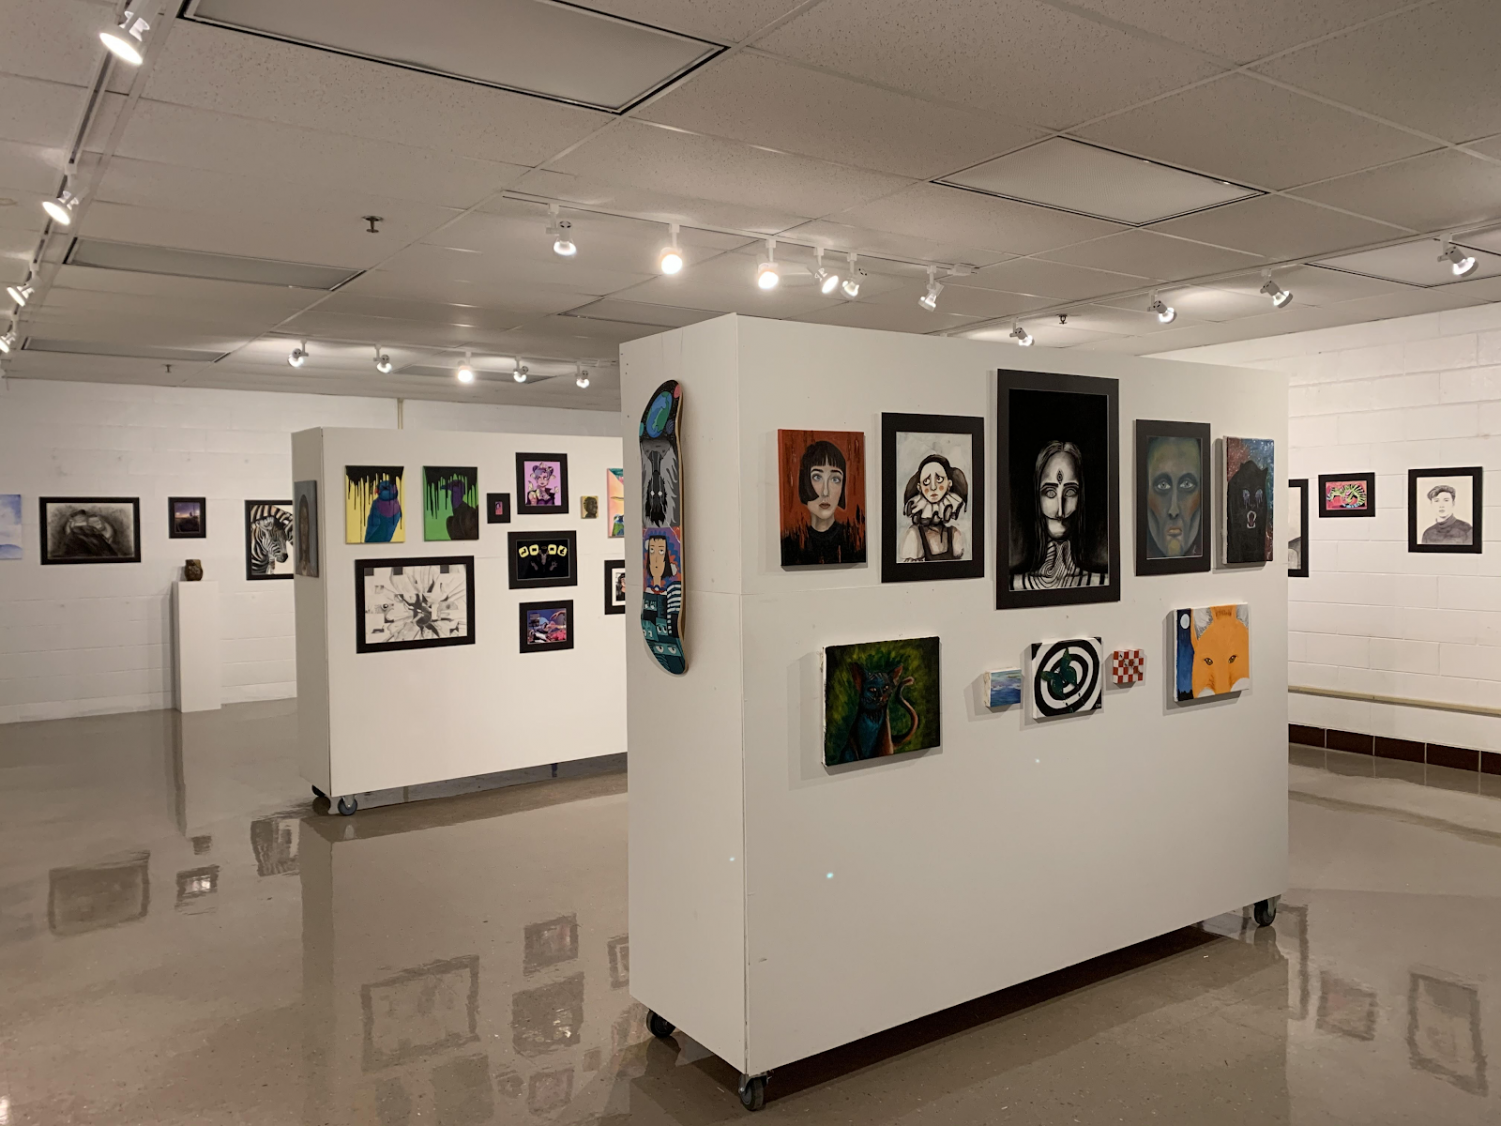 """Gallery 306, organized by the art teachers, showcases artwork created by many students. """"I try to get students to submit their work to the gallery because I am extremely proud of what they have created and how far they have come within the semester or year(s) … Asking if their piece is """"gallery worthy?"""" adds a healthy level of competition. Creating art can both be relaxing and challenging. It's a great way to express yourself and learn new techniques with various materials"""" said ceramic, digital art, and photography teacher Megan Idell."""